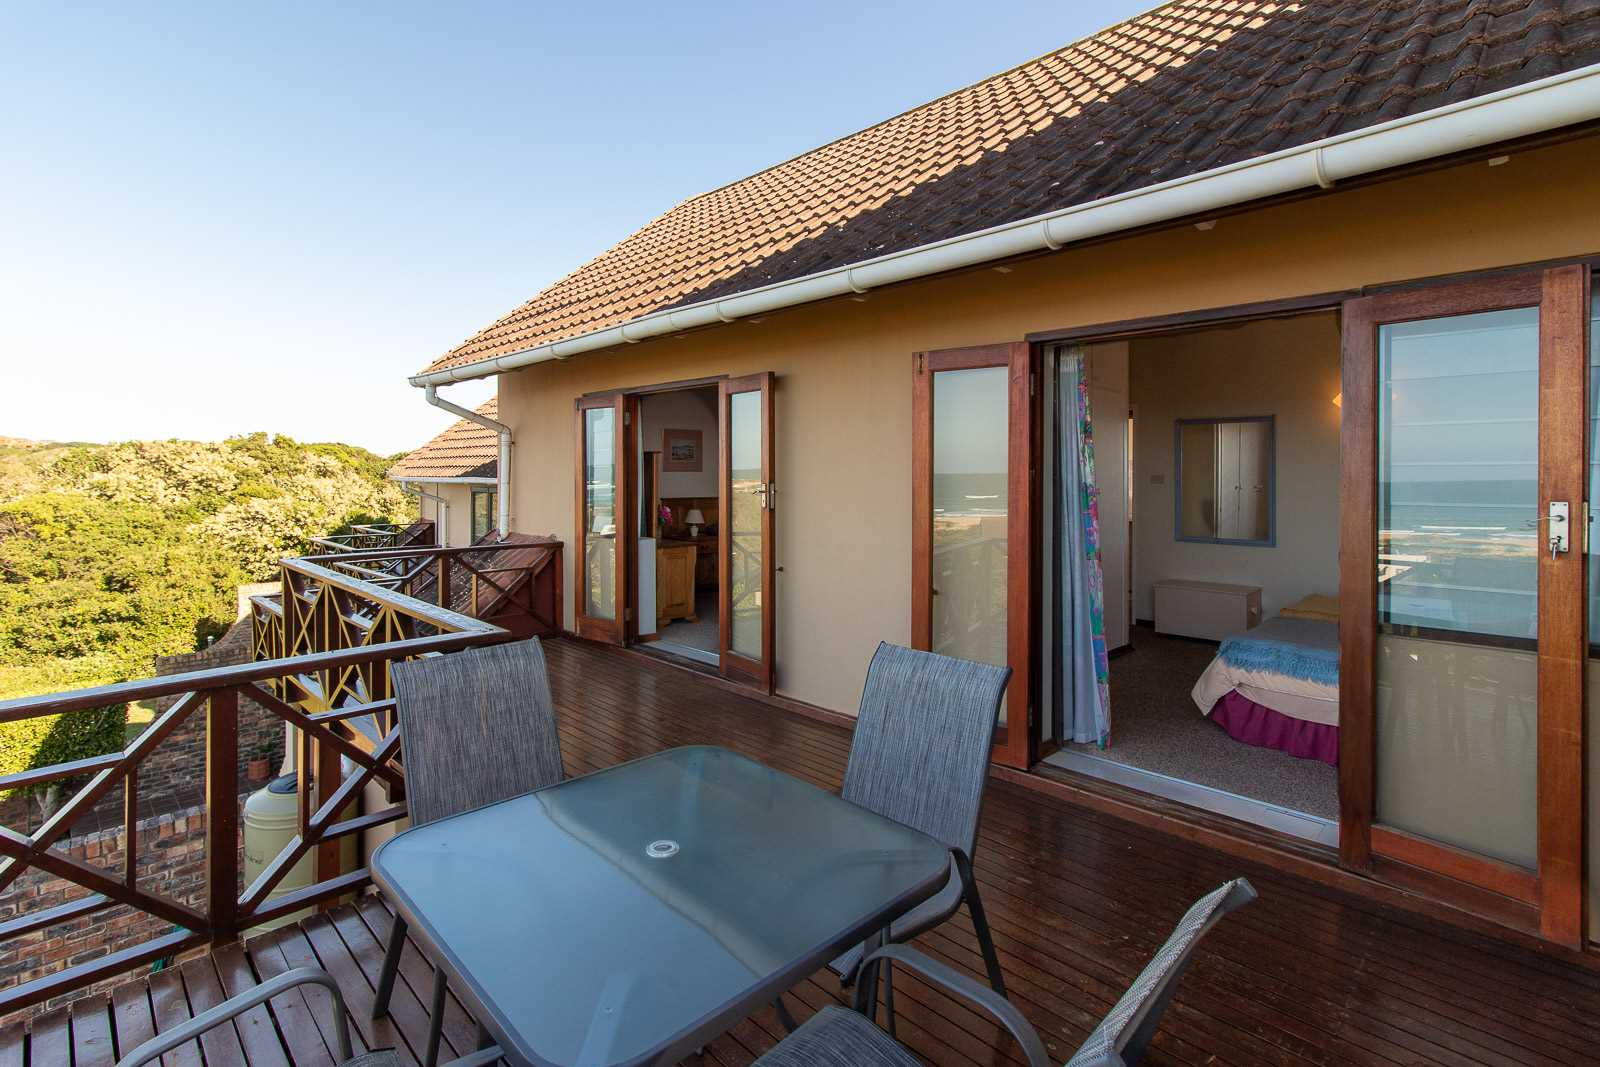 Three Bedroom Property for Sale in Port Alfred - sea views